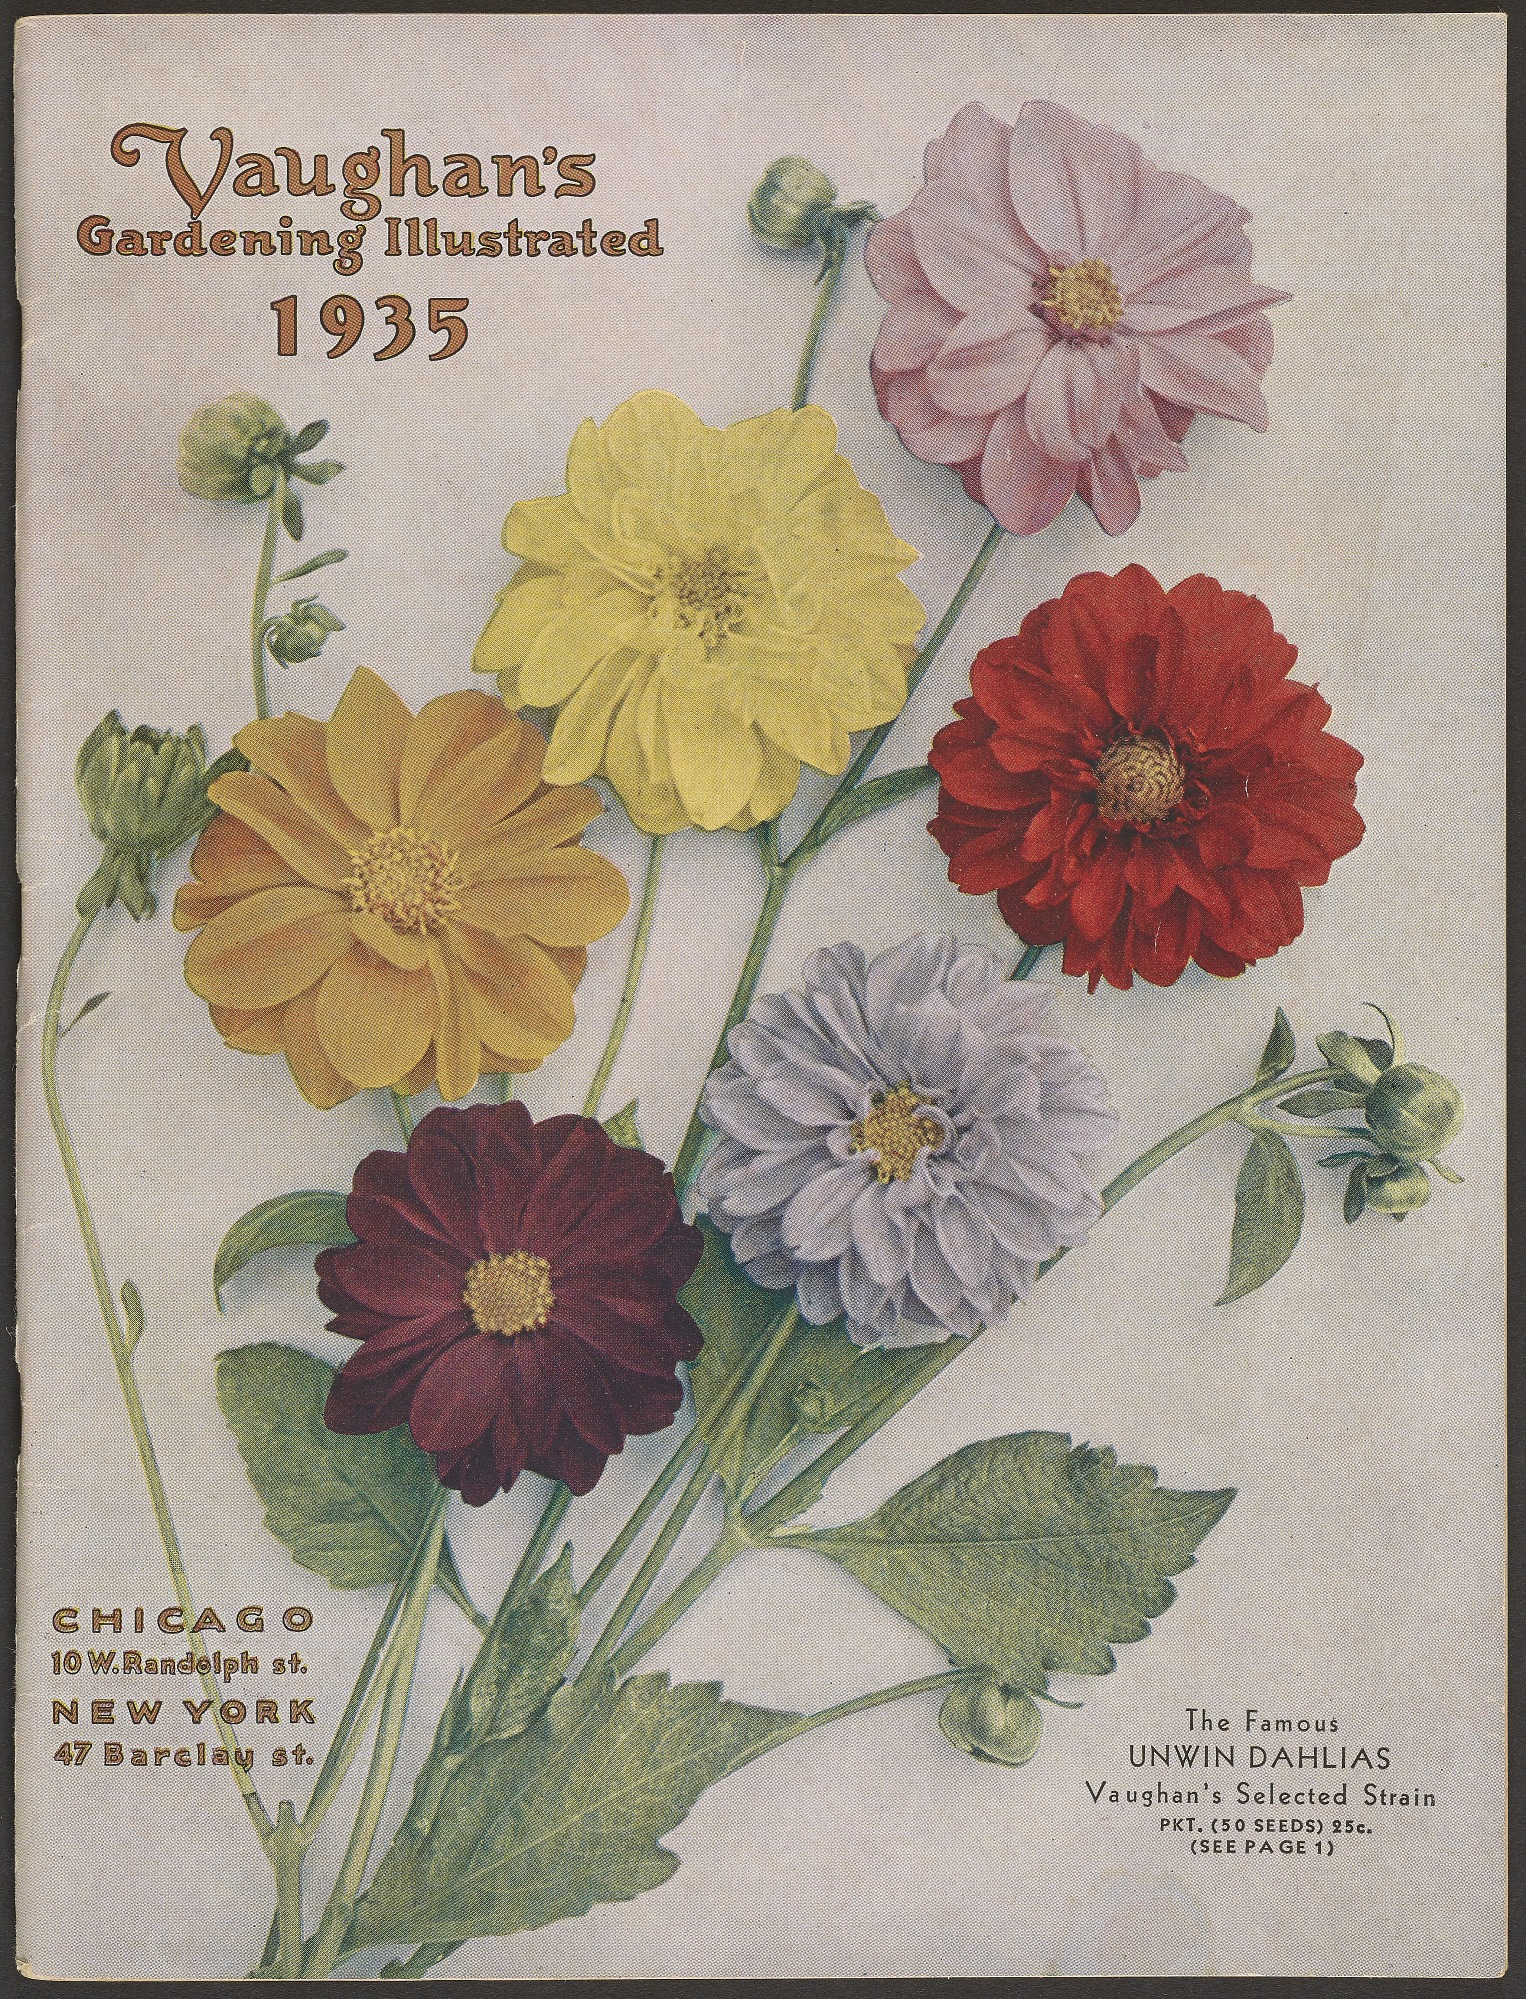 Vaughan's Gardening Illustrated, 1935